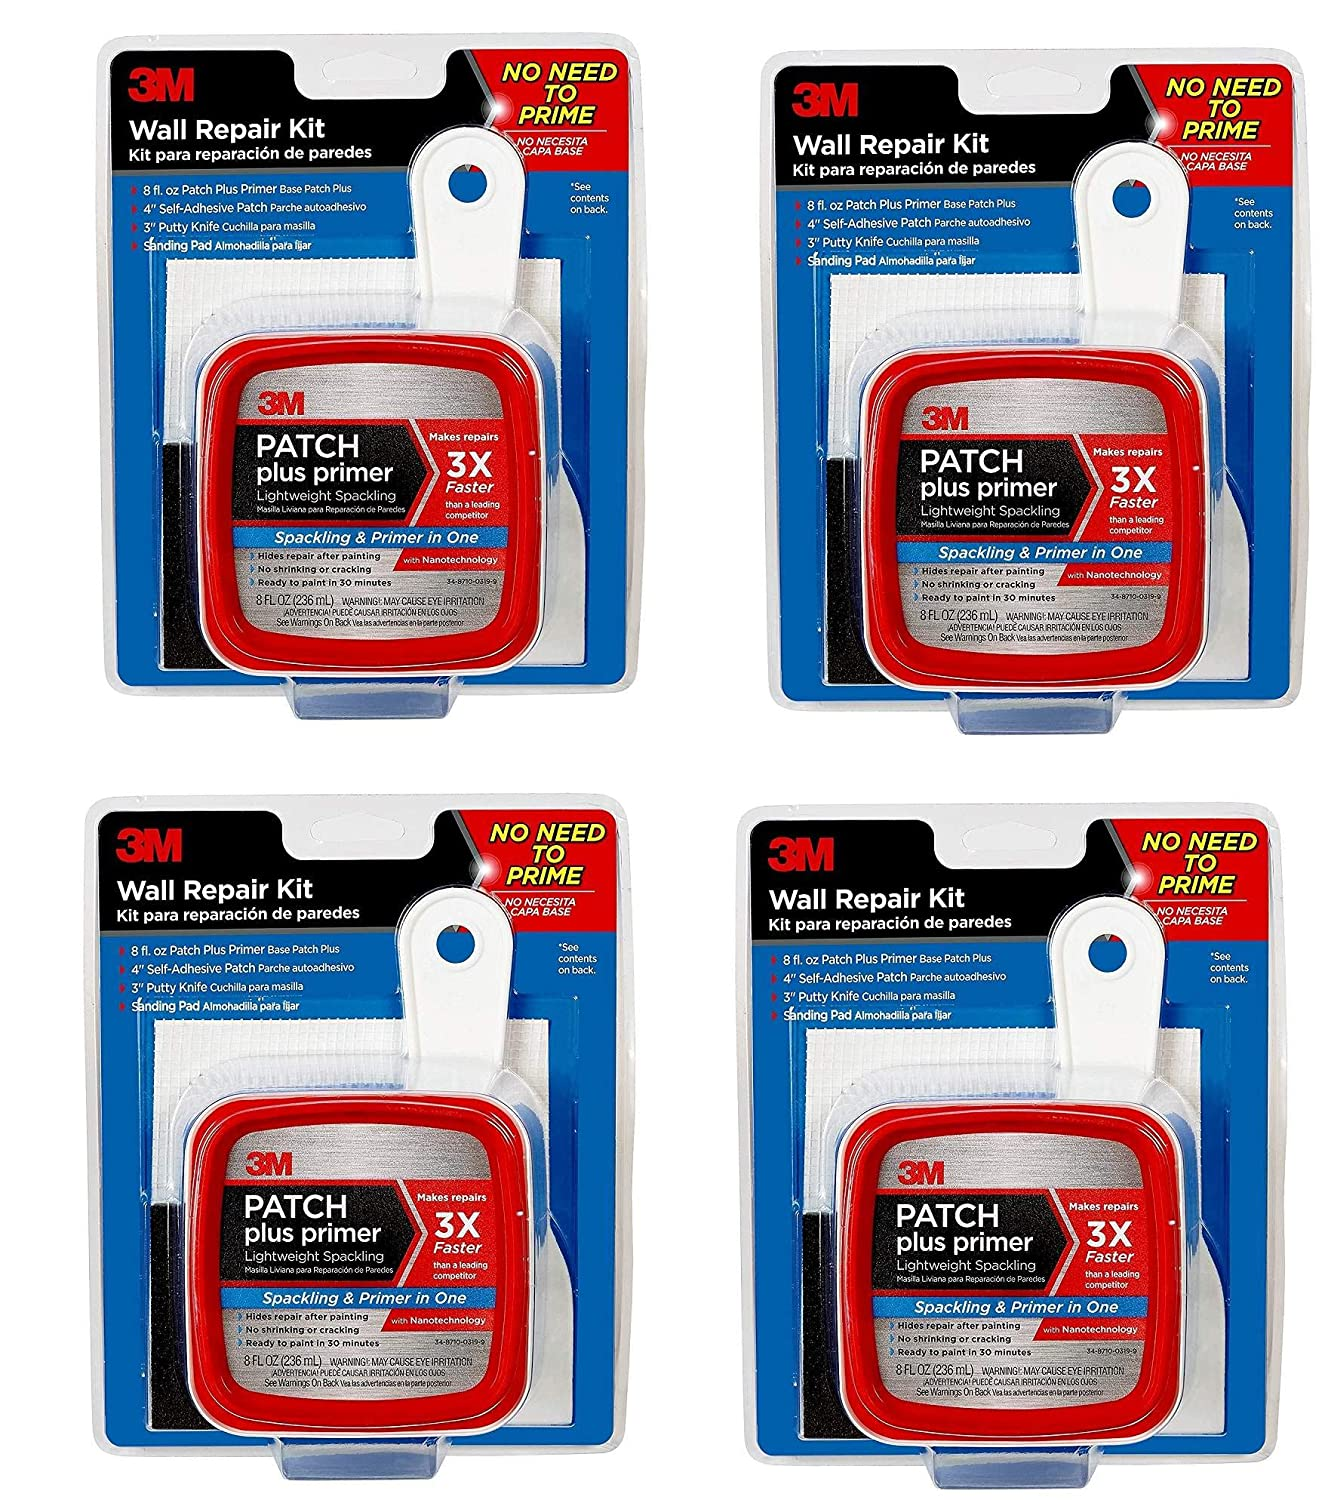 3M Patch Plus Primer Kit with 8 fl  oz Patch Plus Primer, Self-Adhesive  Patch, Putty Knife and Sanding Pad, 4 Pack